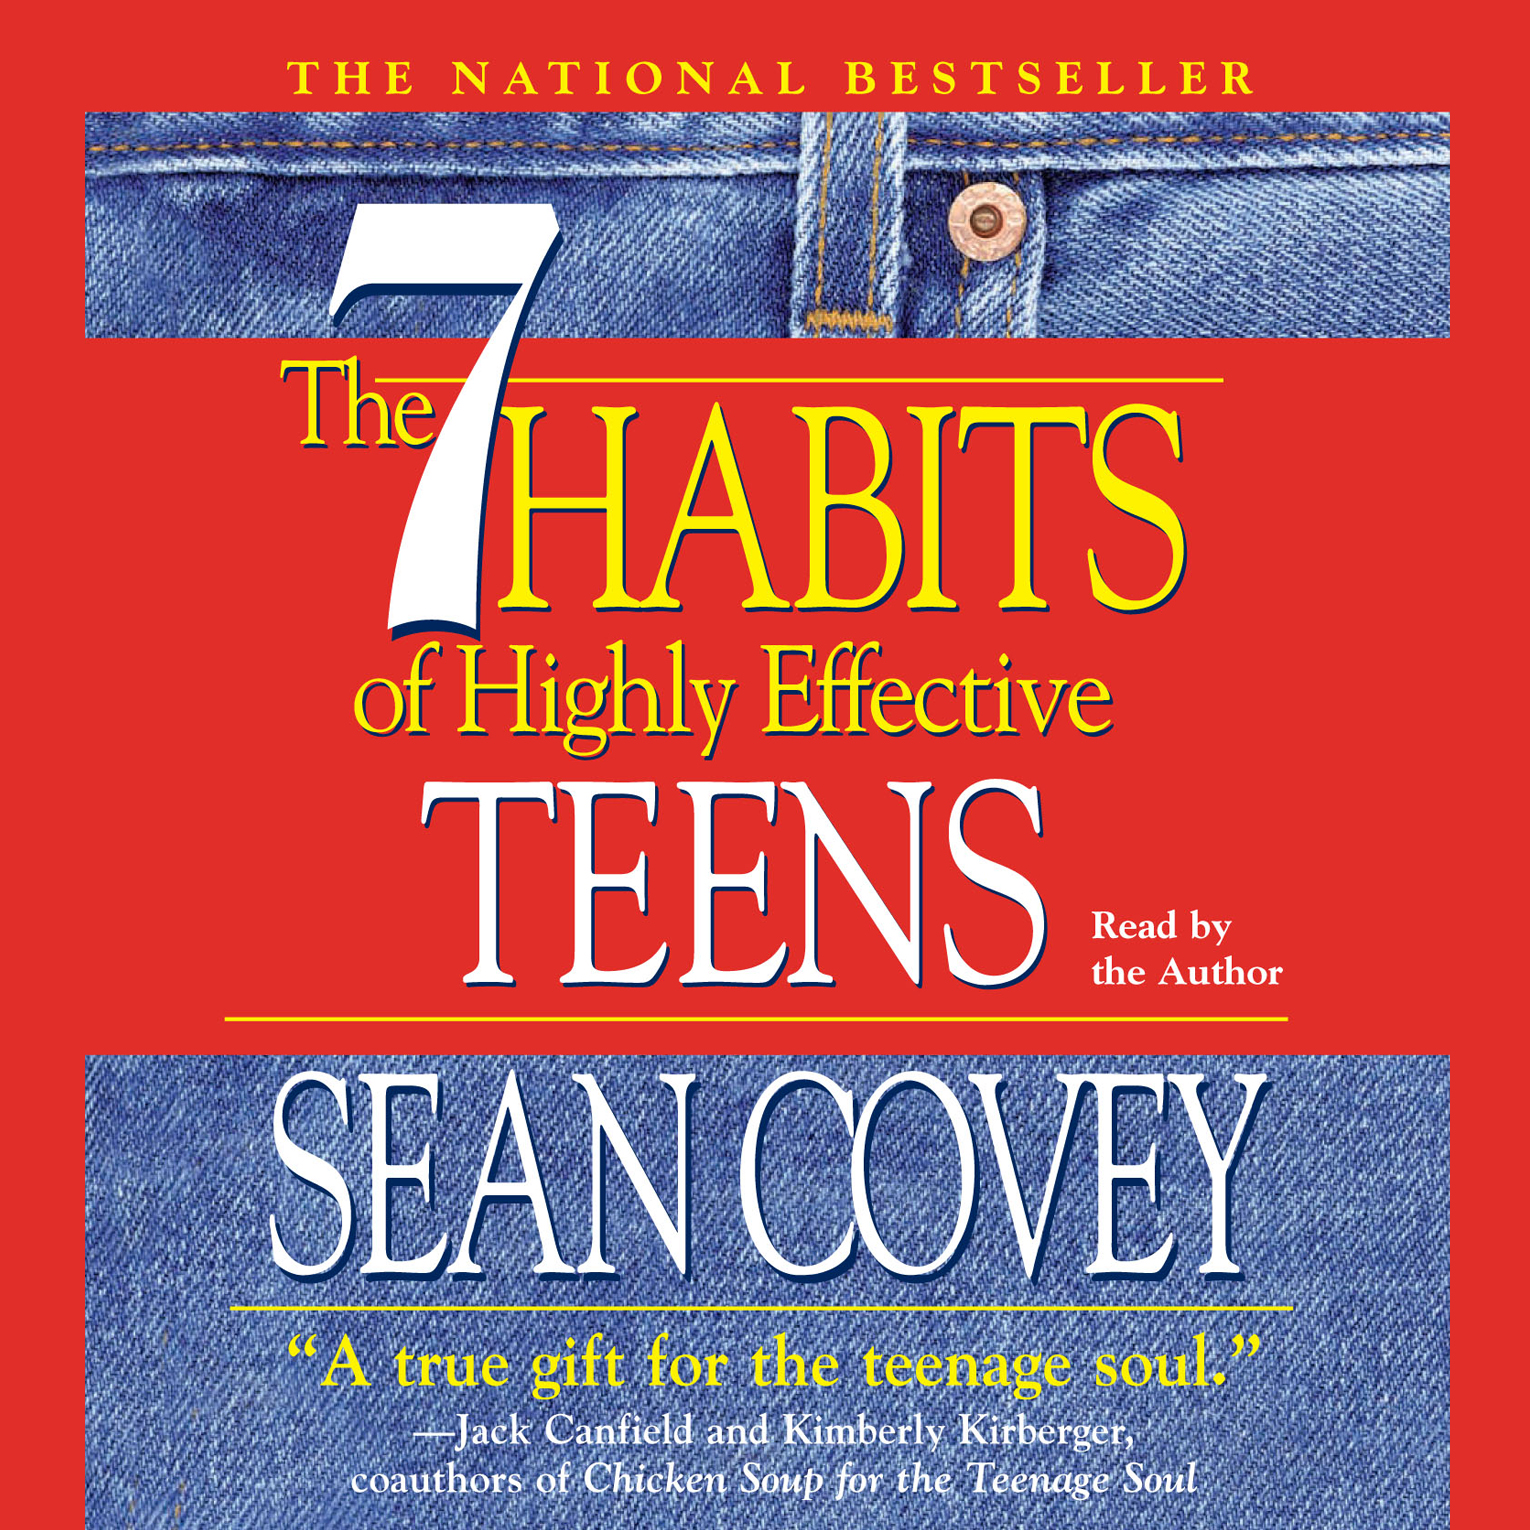 stephen covey and highly effective teens Are you ready for some powerful and profound change in your life here are 10 big ideas from the 7 habits of highly effective people, by stephen covey.